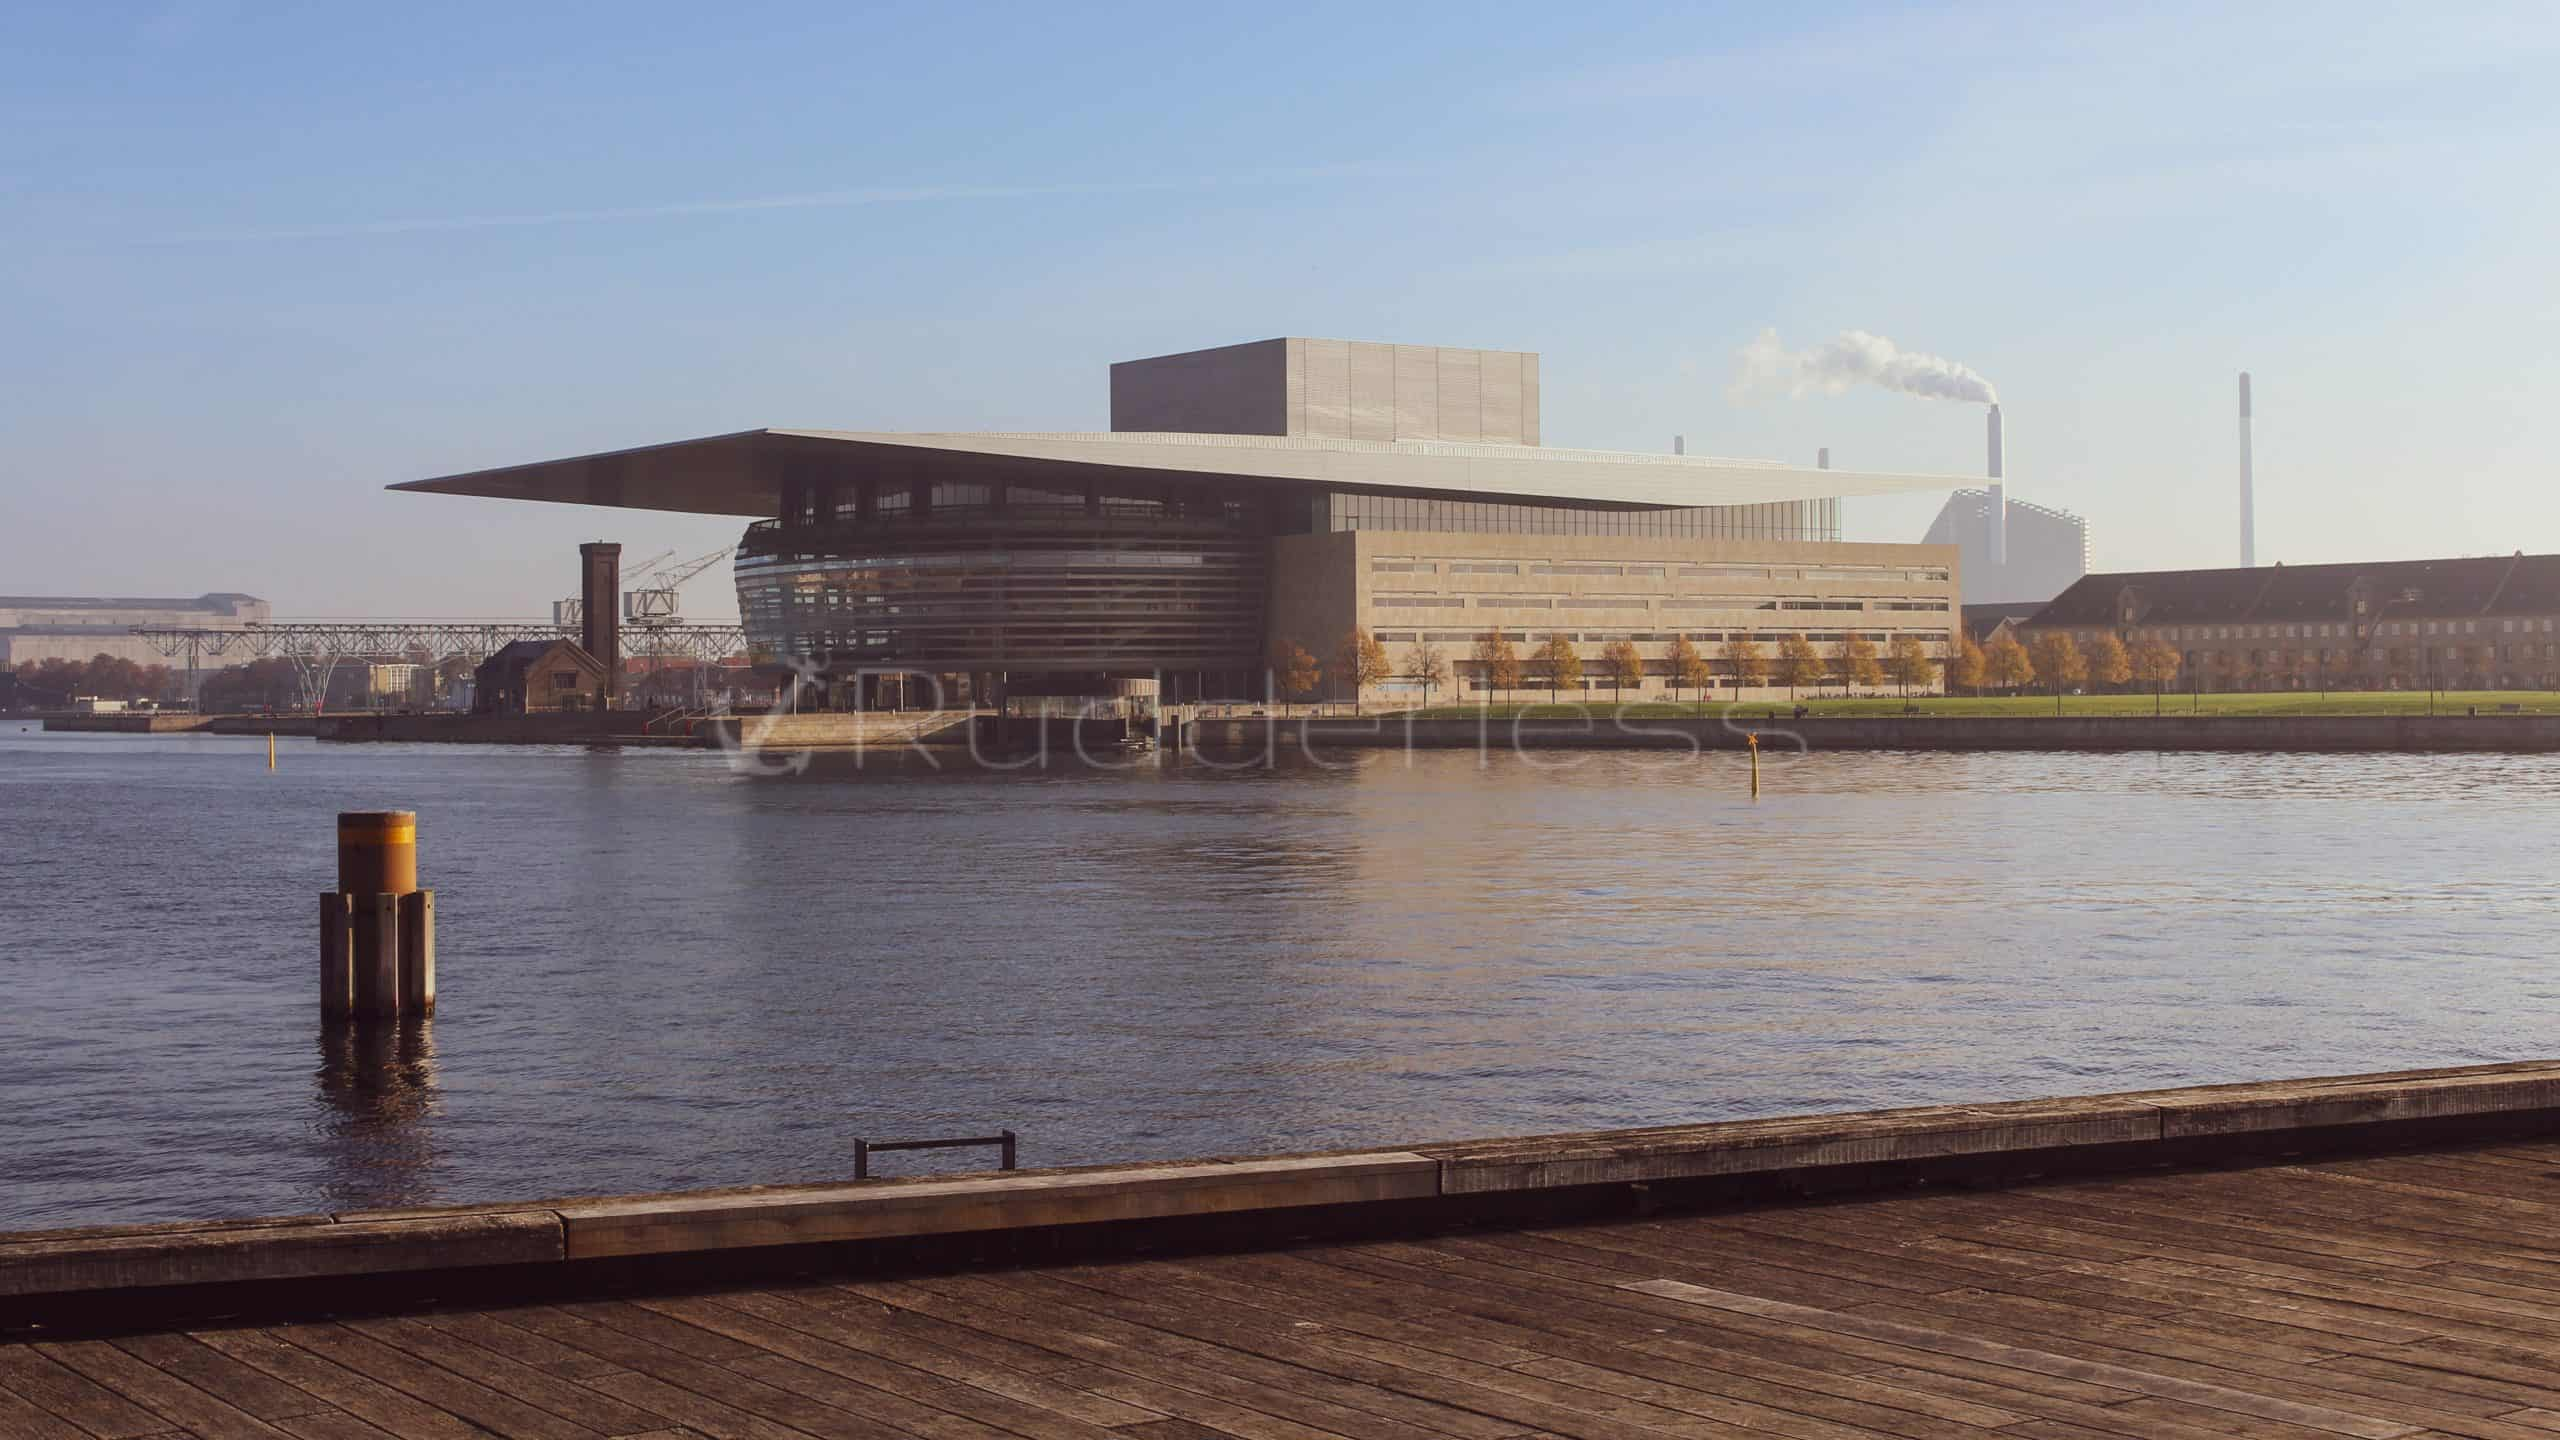 things to do copenhagen - Copenhagen Opera House